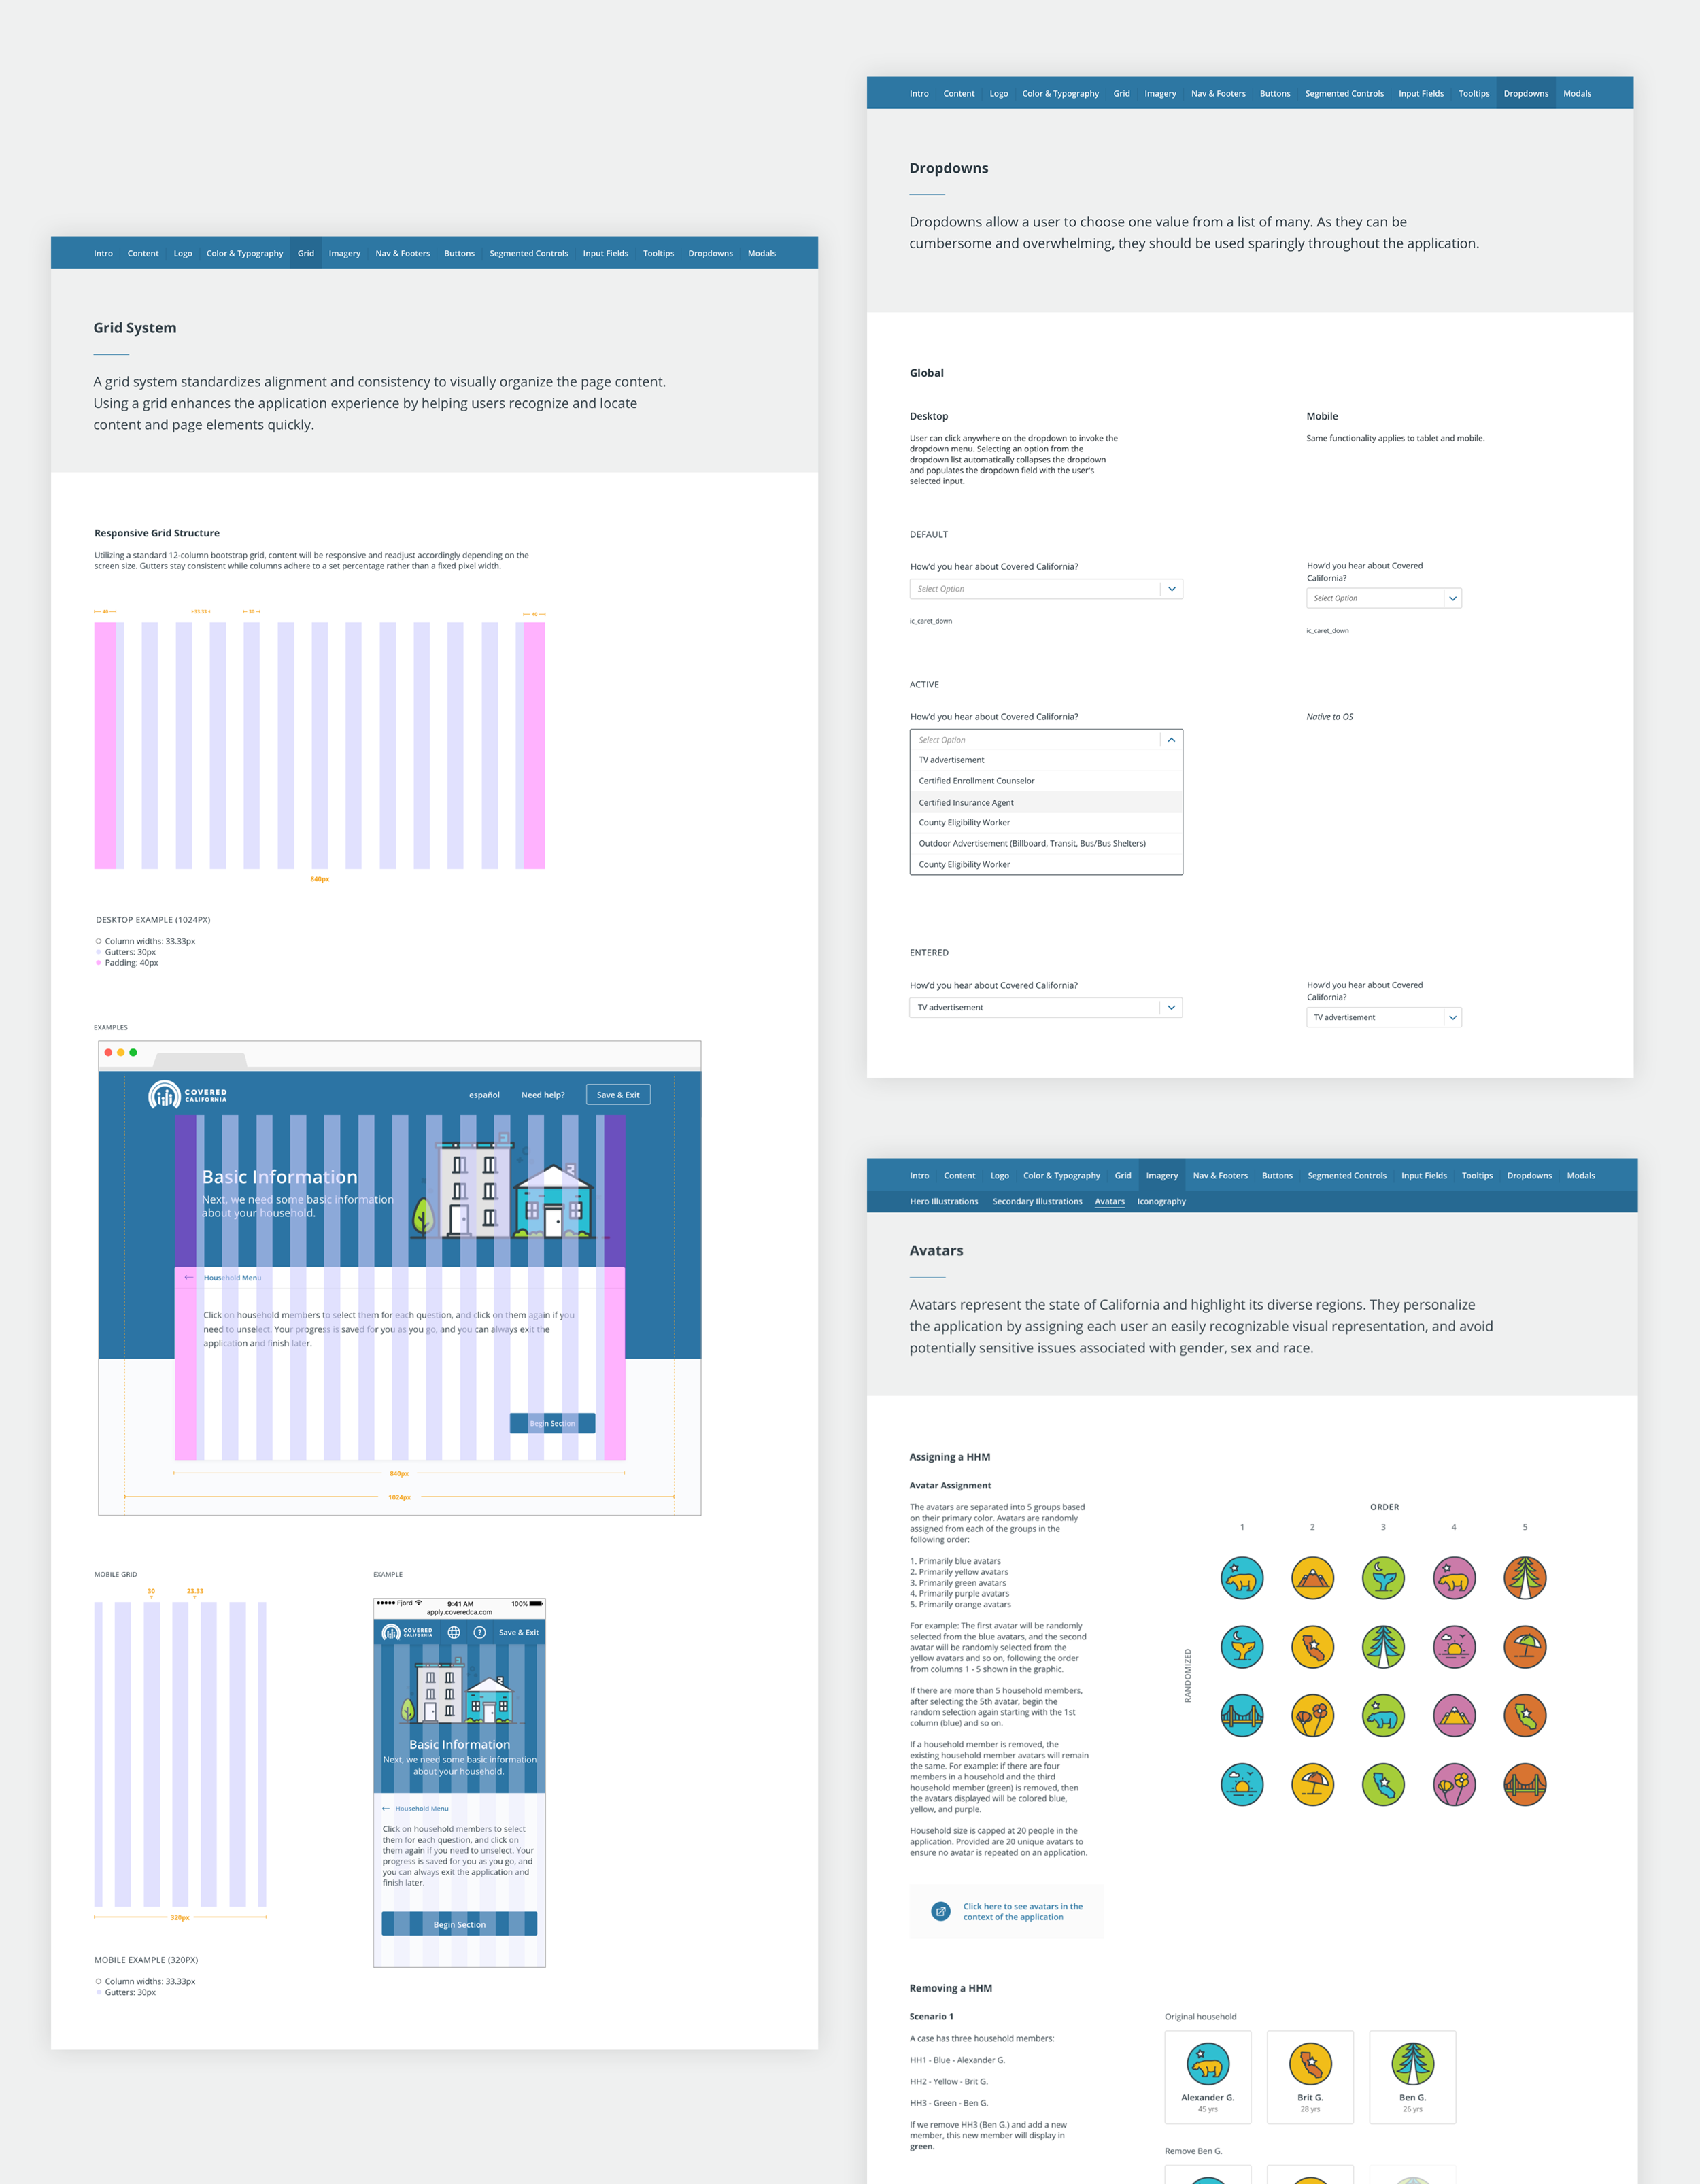 StyleGuide1.png